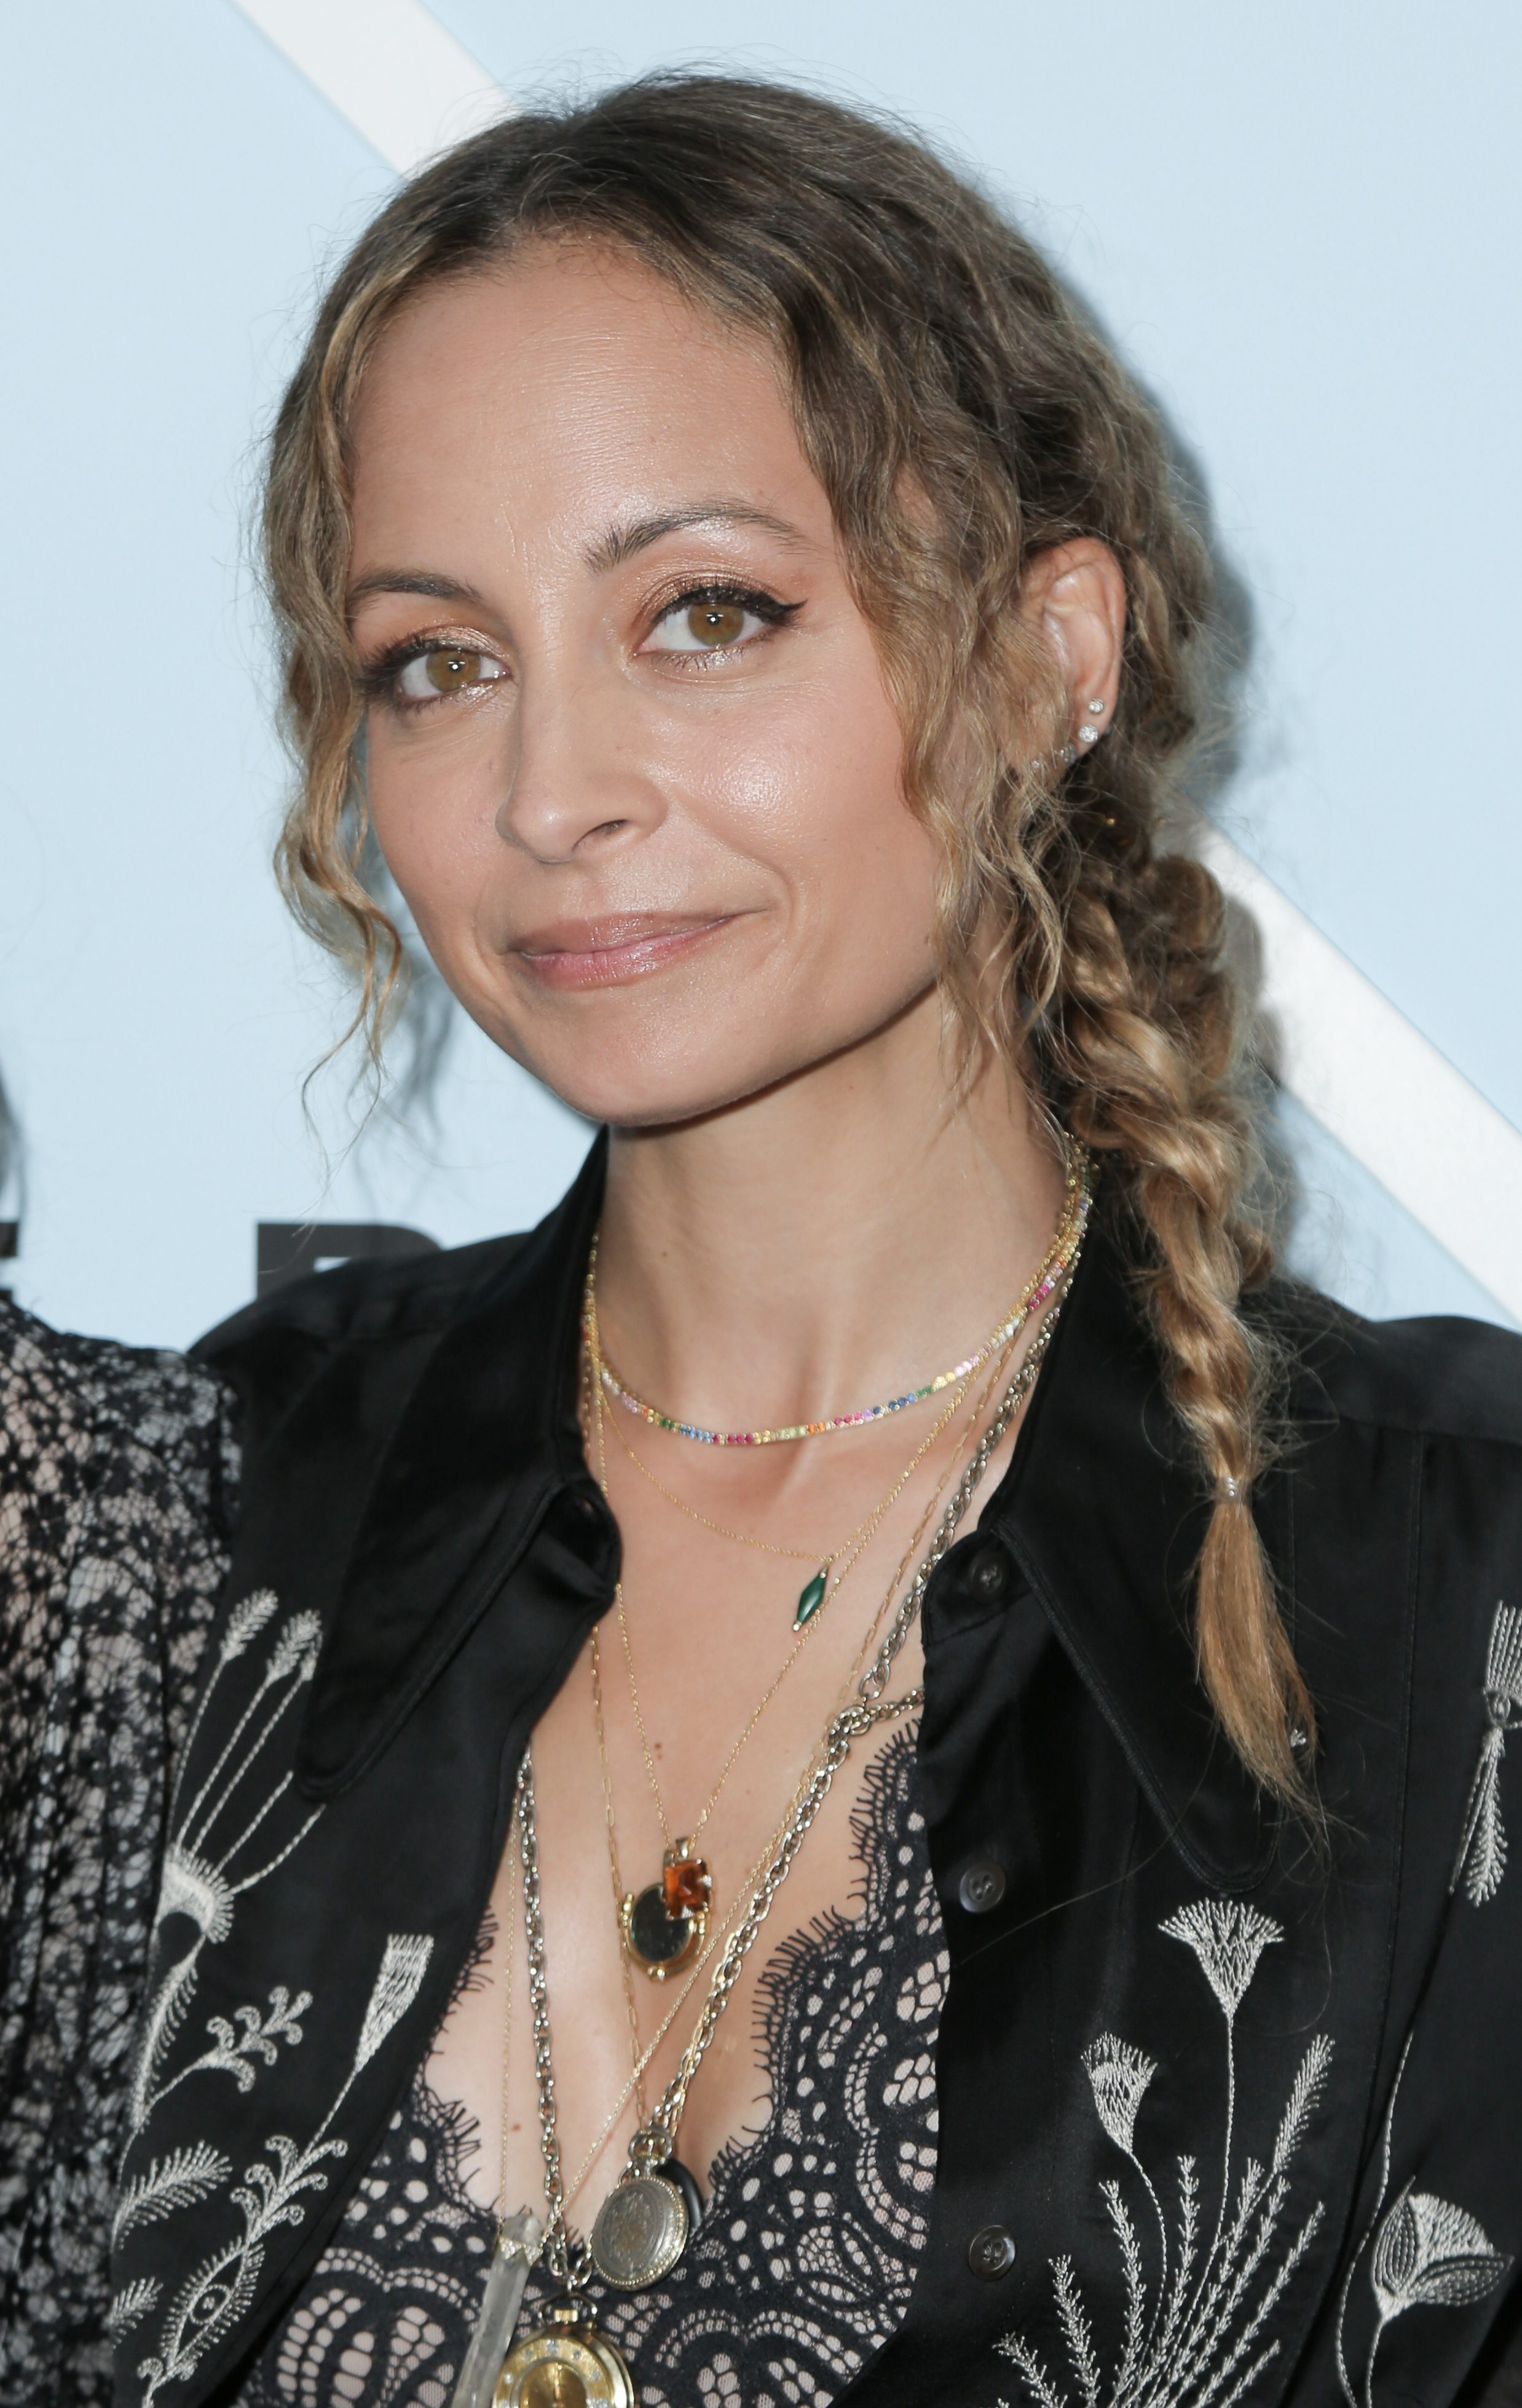 Nicole Richie's Short Braid with Frizzy Waves